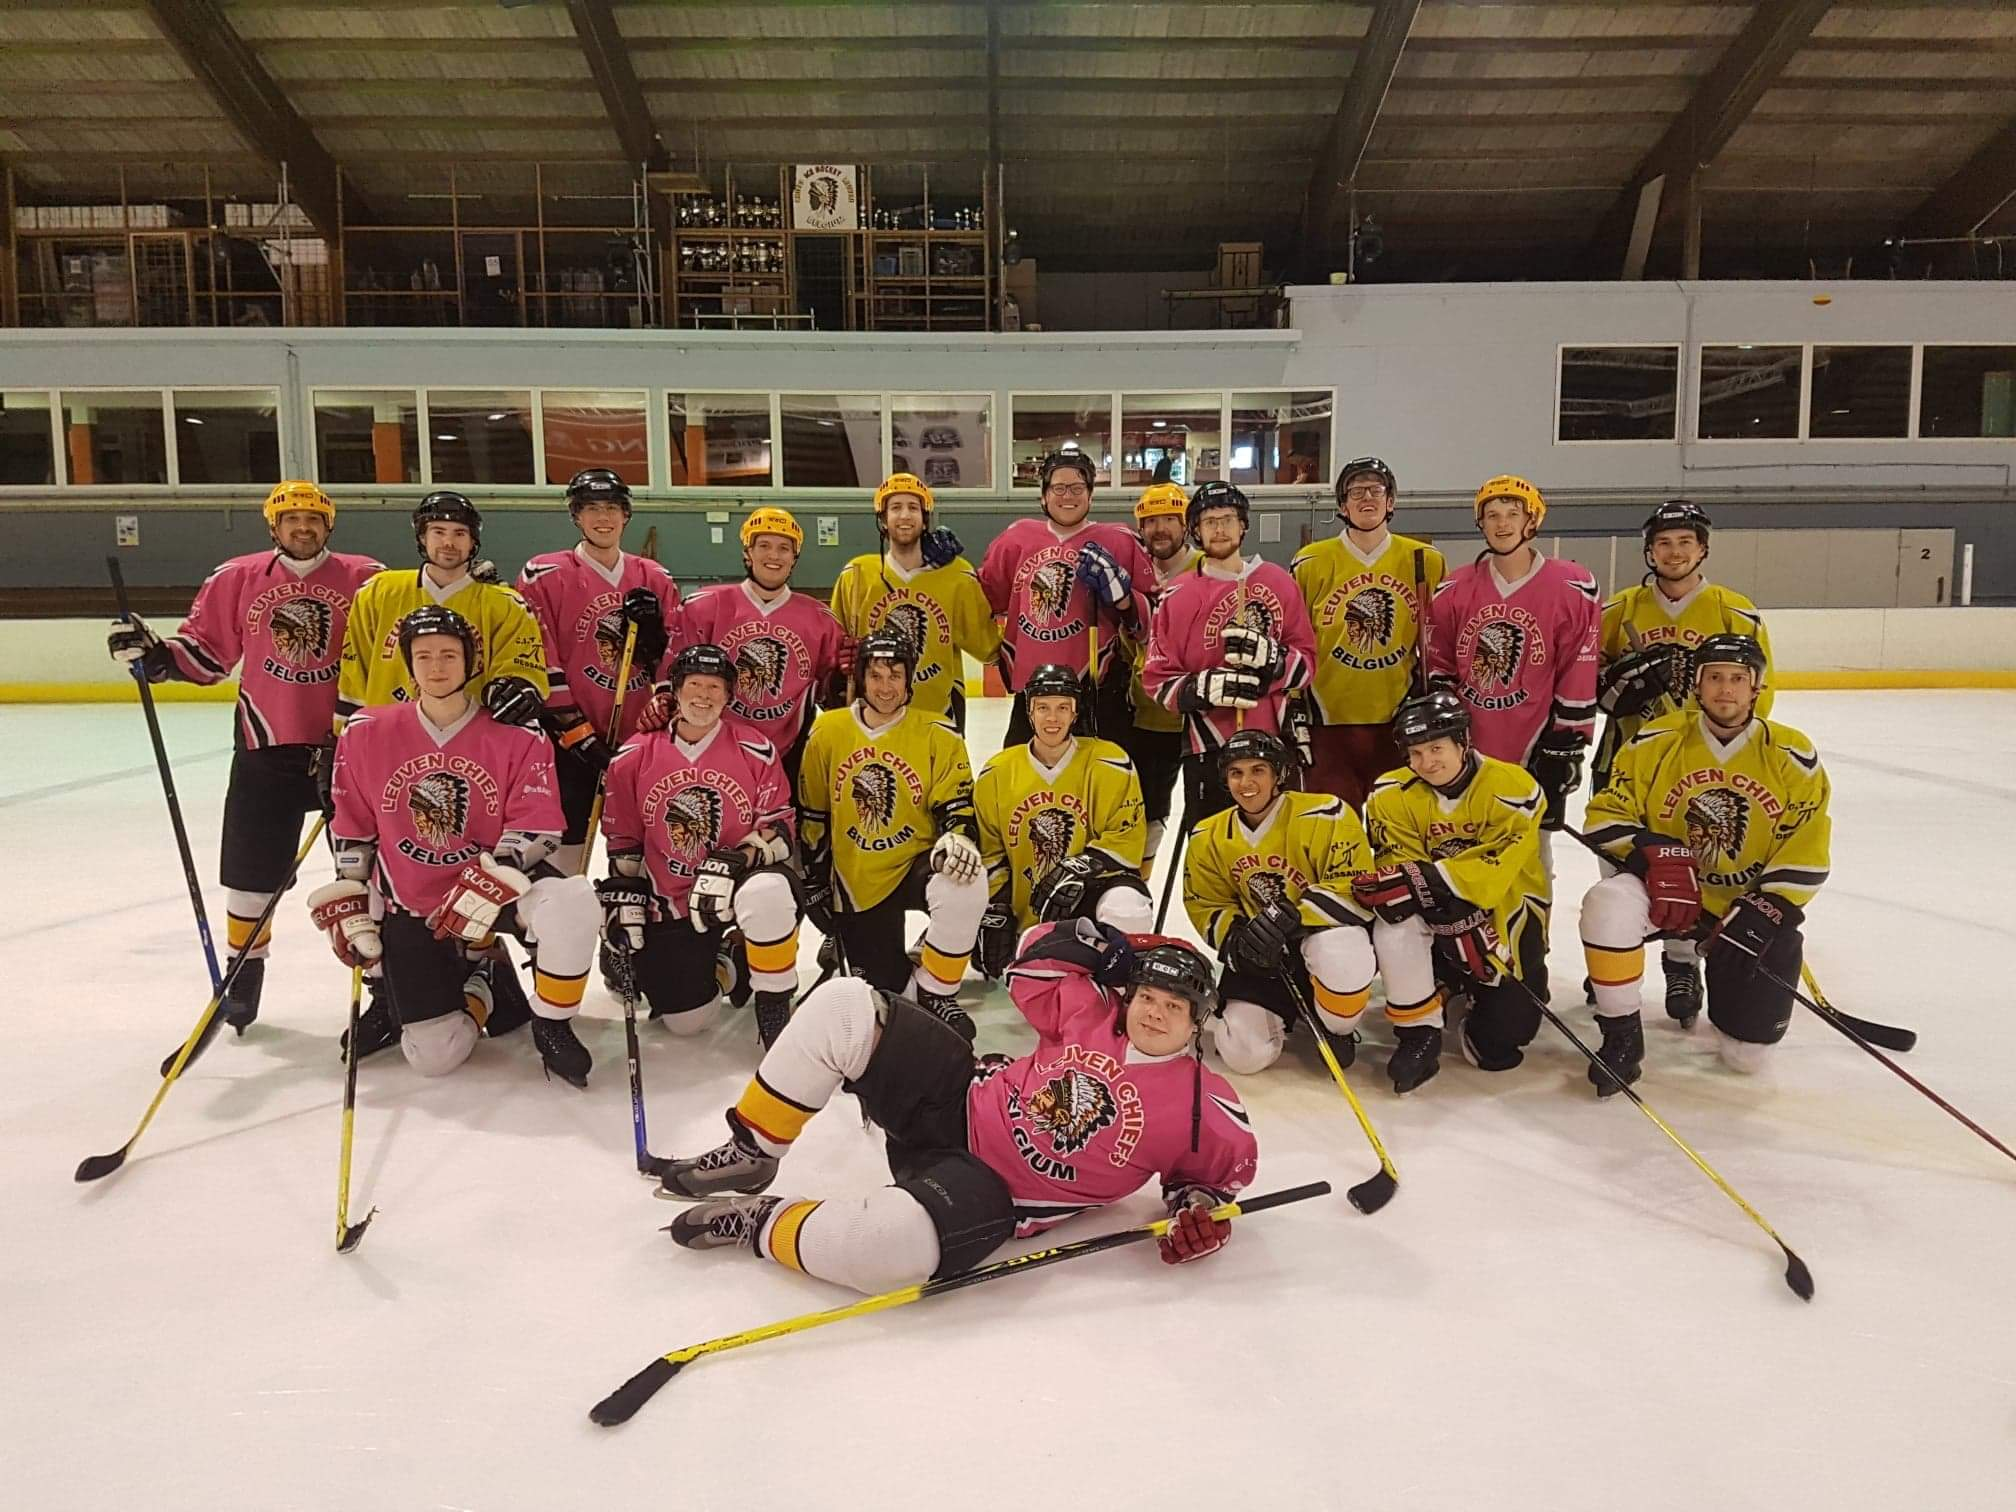 The latest VisionWorks teambuilding event was ice hockey!